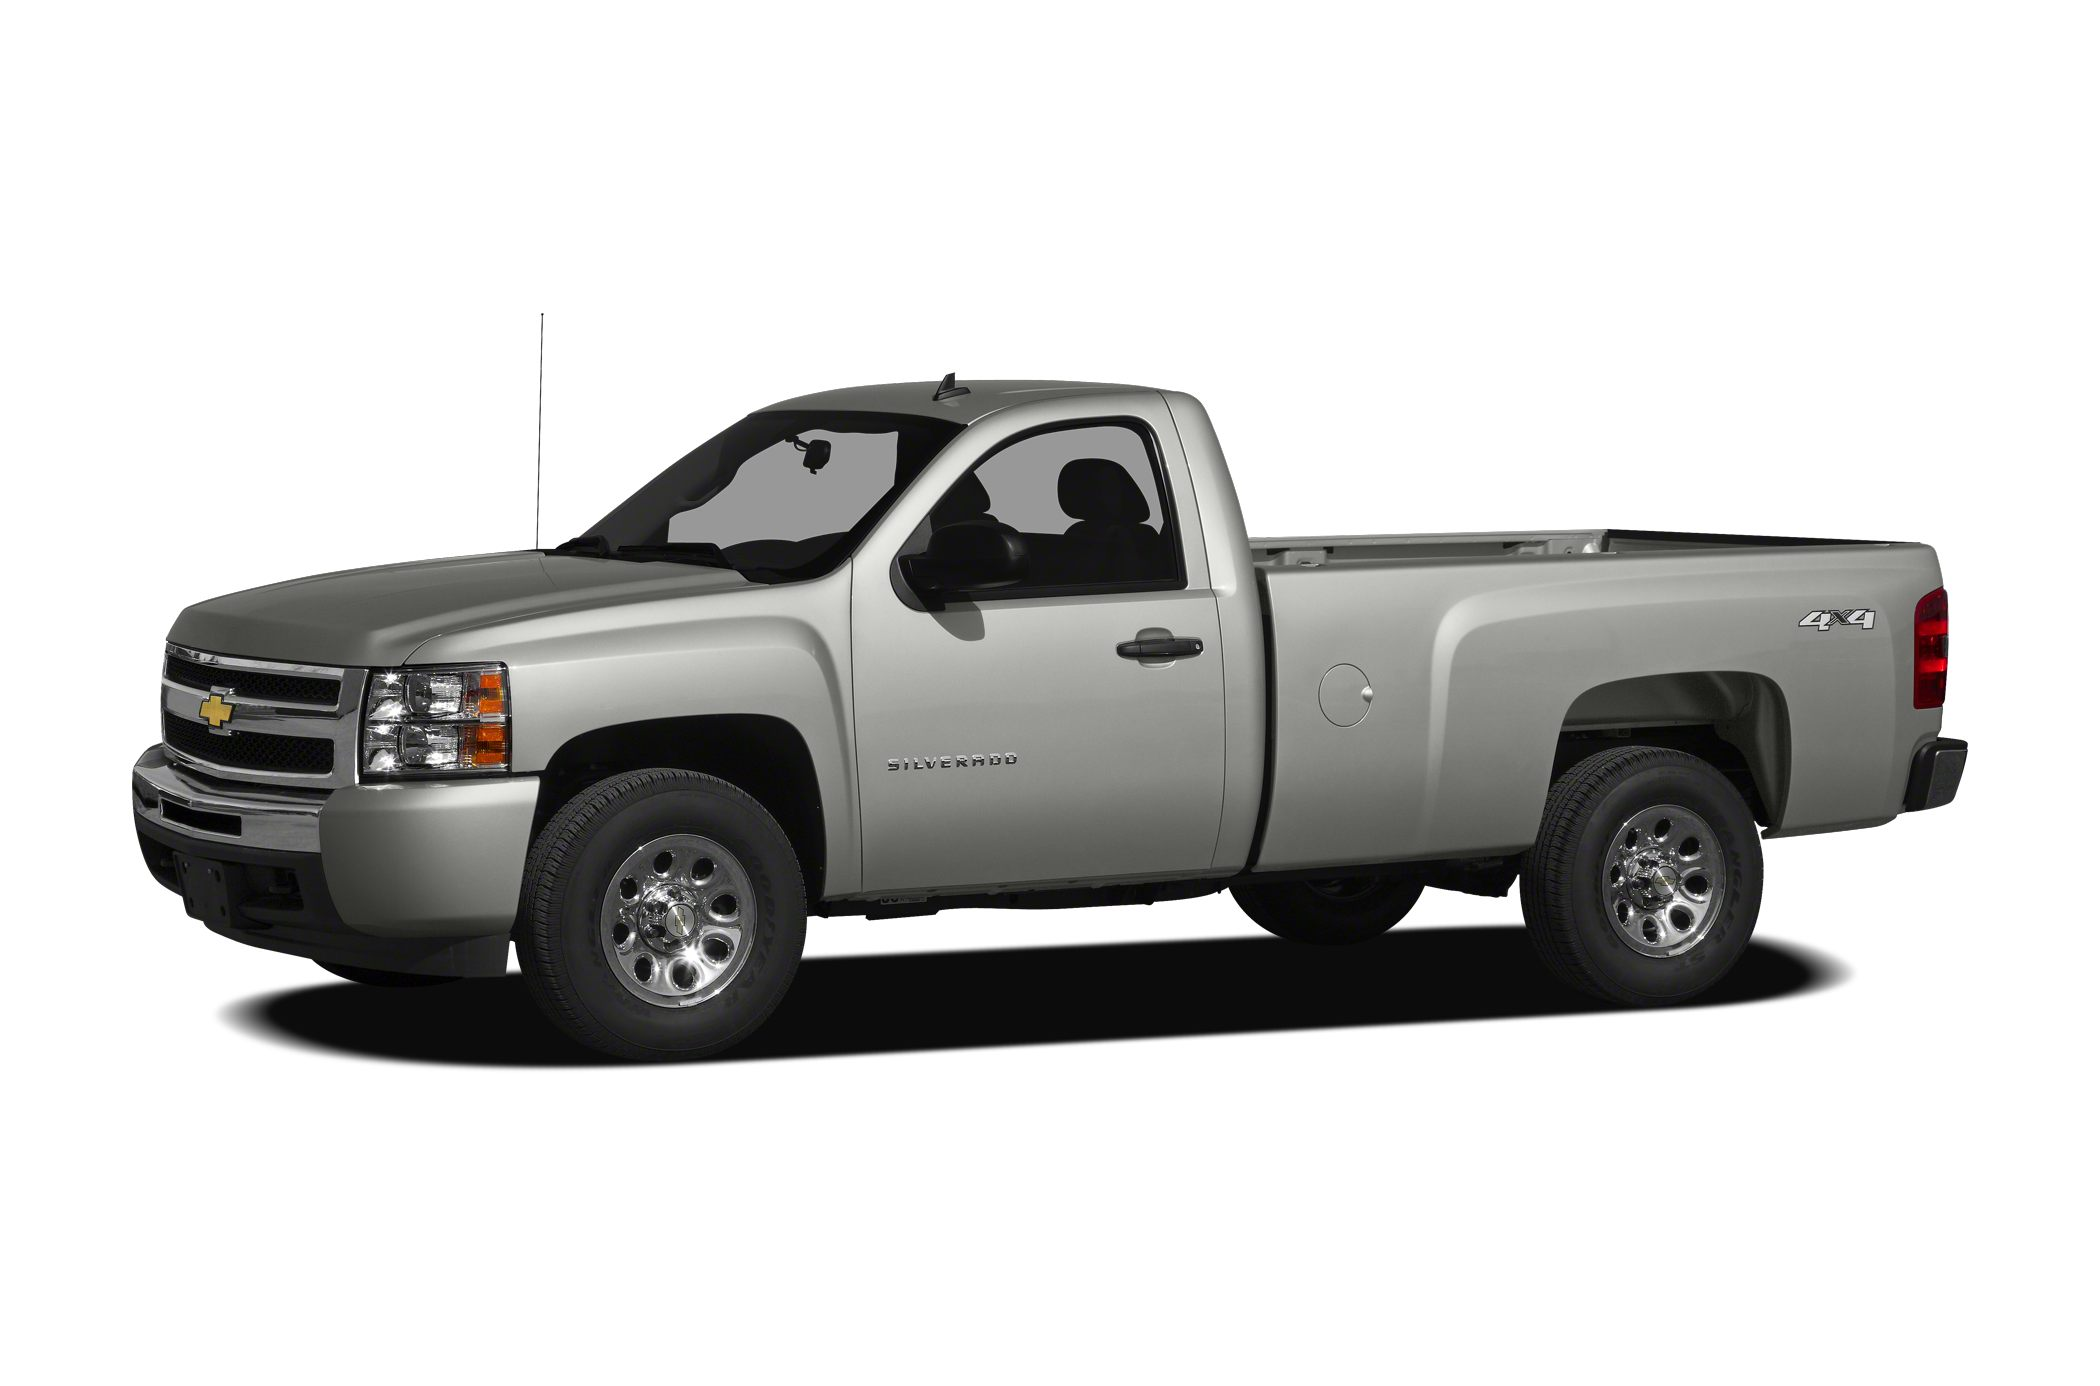 2009 Chevrolet Silverado 1500 WT 1299500 WHAT A PRICE THIS VEHICLE IS PRICED TO MOVE AT 250000